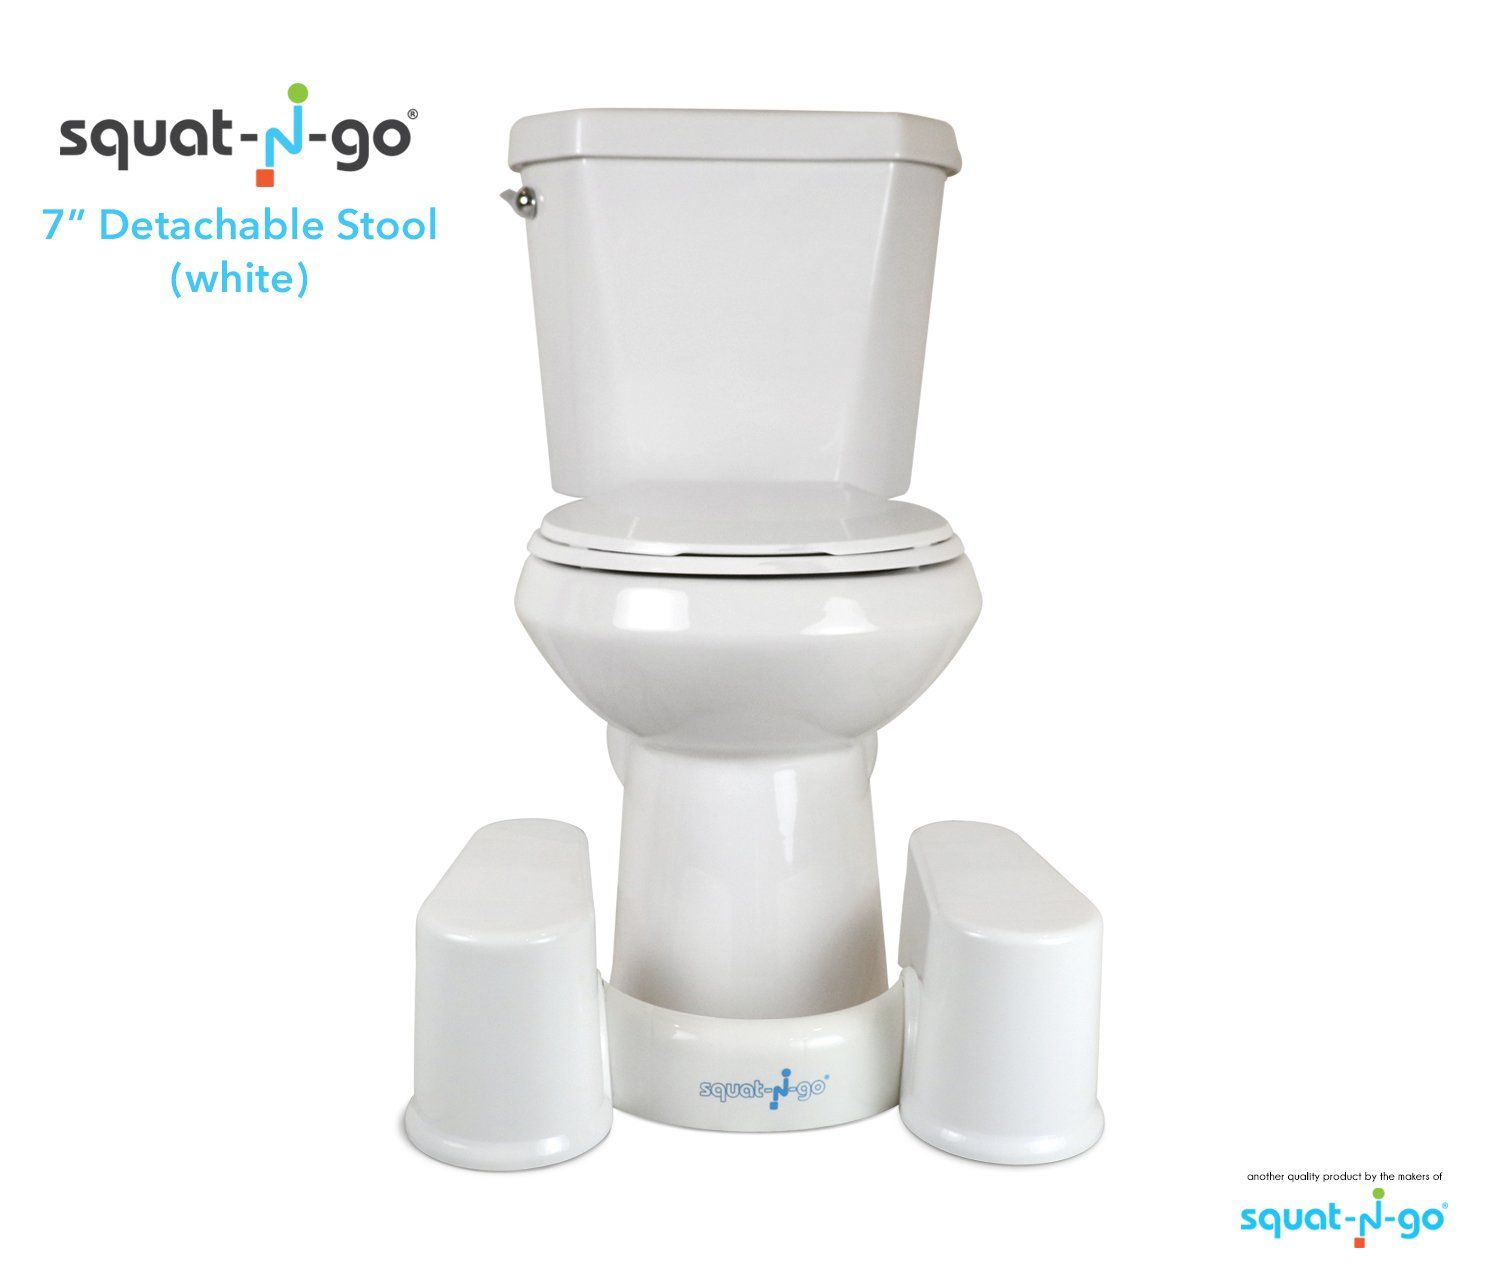 Squat N Go Space Saver Toilet Stool | The Only Detachable and Compact Bathroom Stool | Free Bathroom Guide | 7'' Fits ALL Toilets